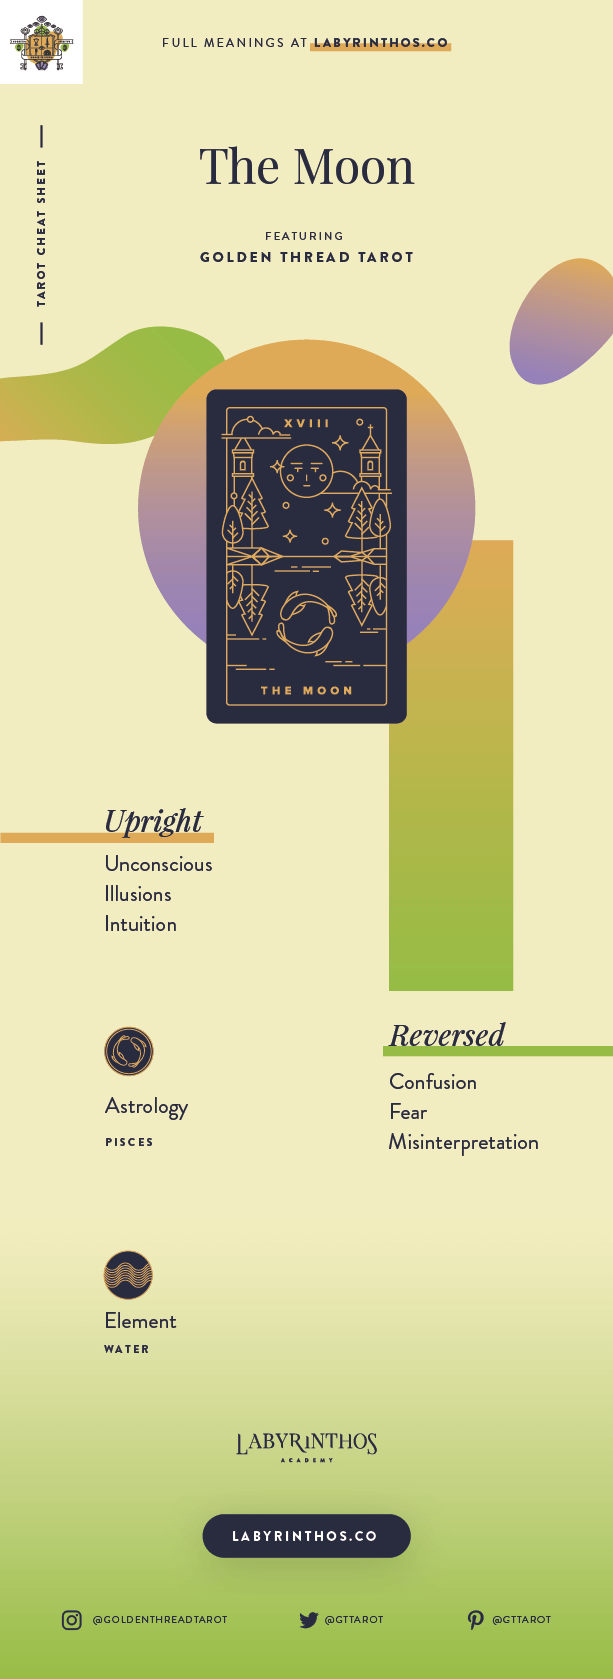 The Moon Meaning - Tarot Card Meanings Cheat Sheet